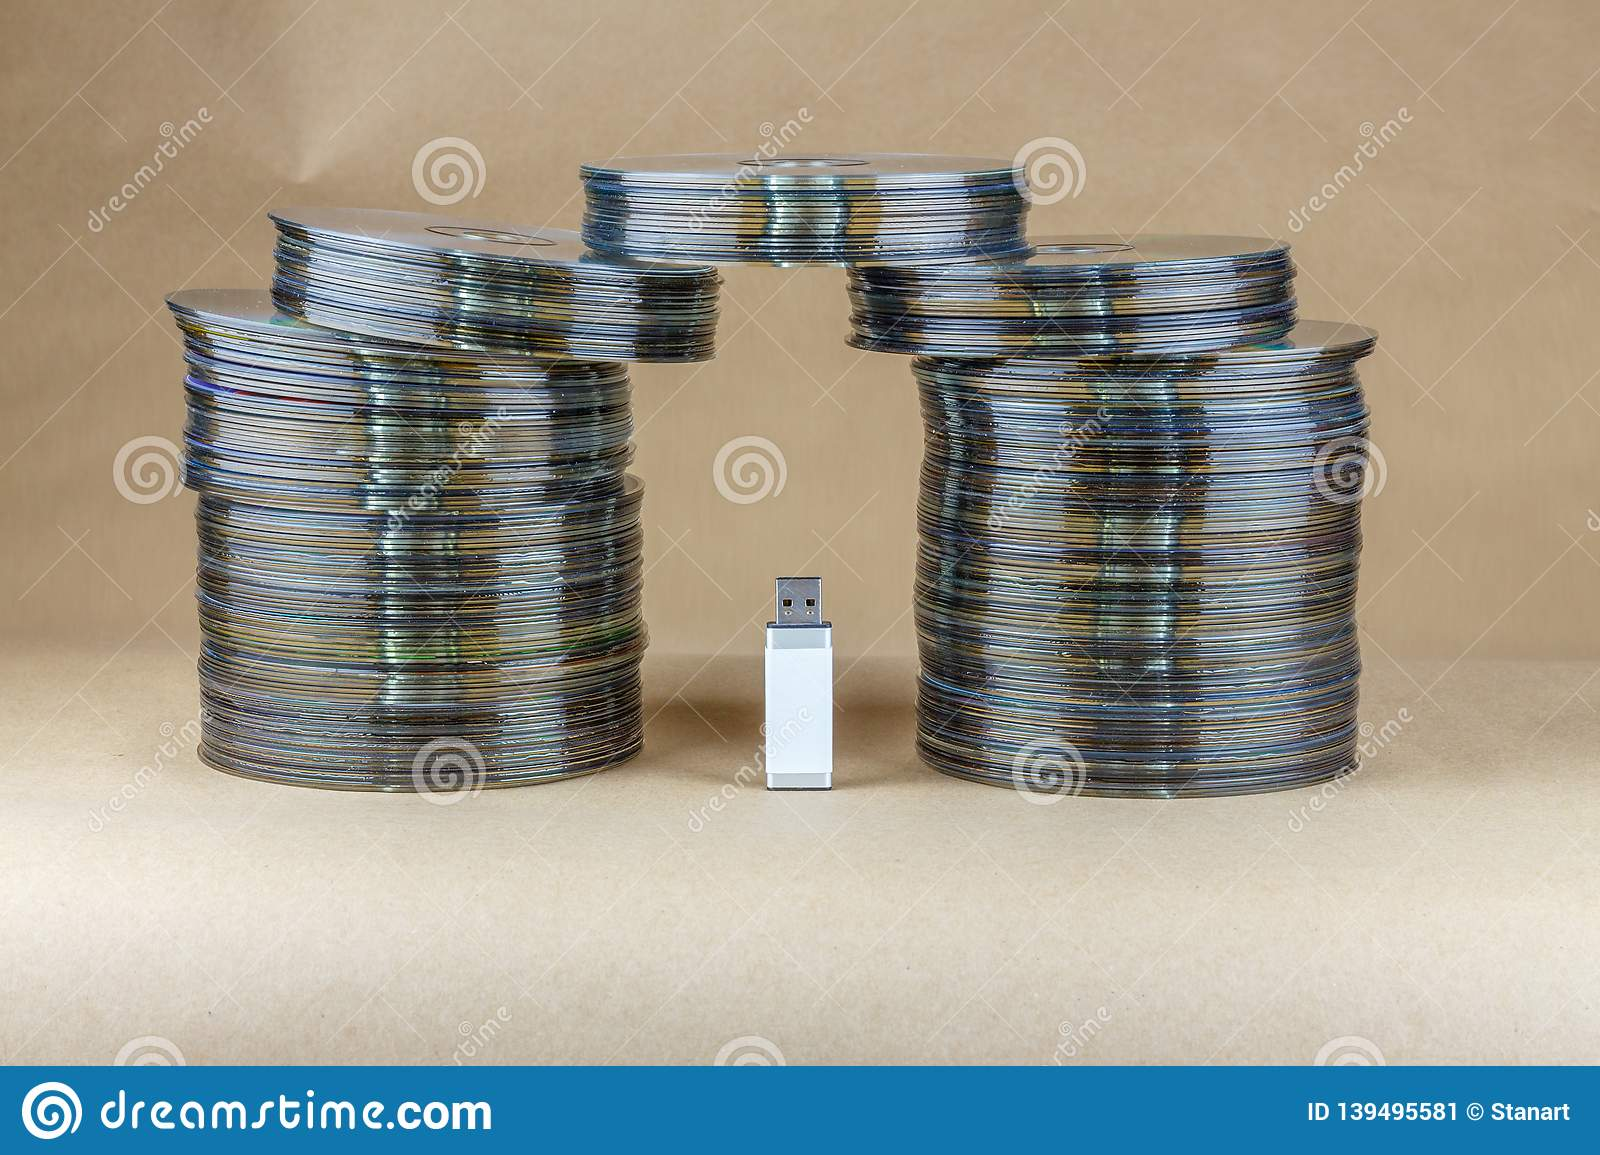 USB Universal Serial Bus stick is surroundet between a stack of cd compact disc and dvd digital versatile optical disc